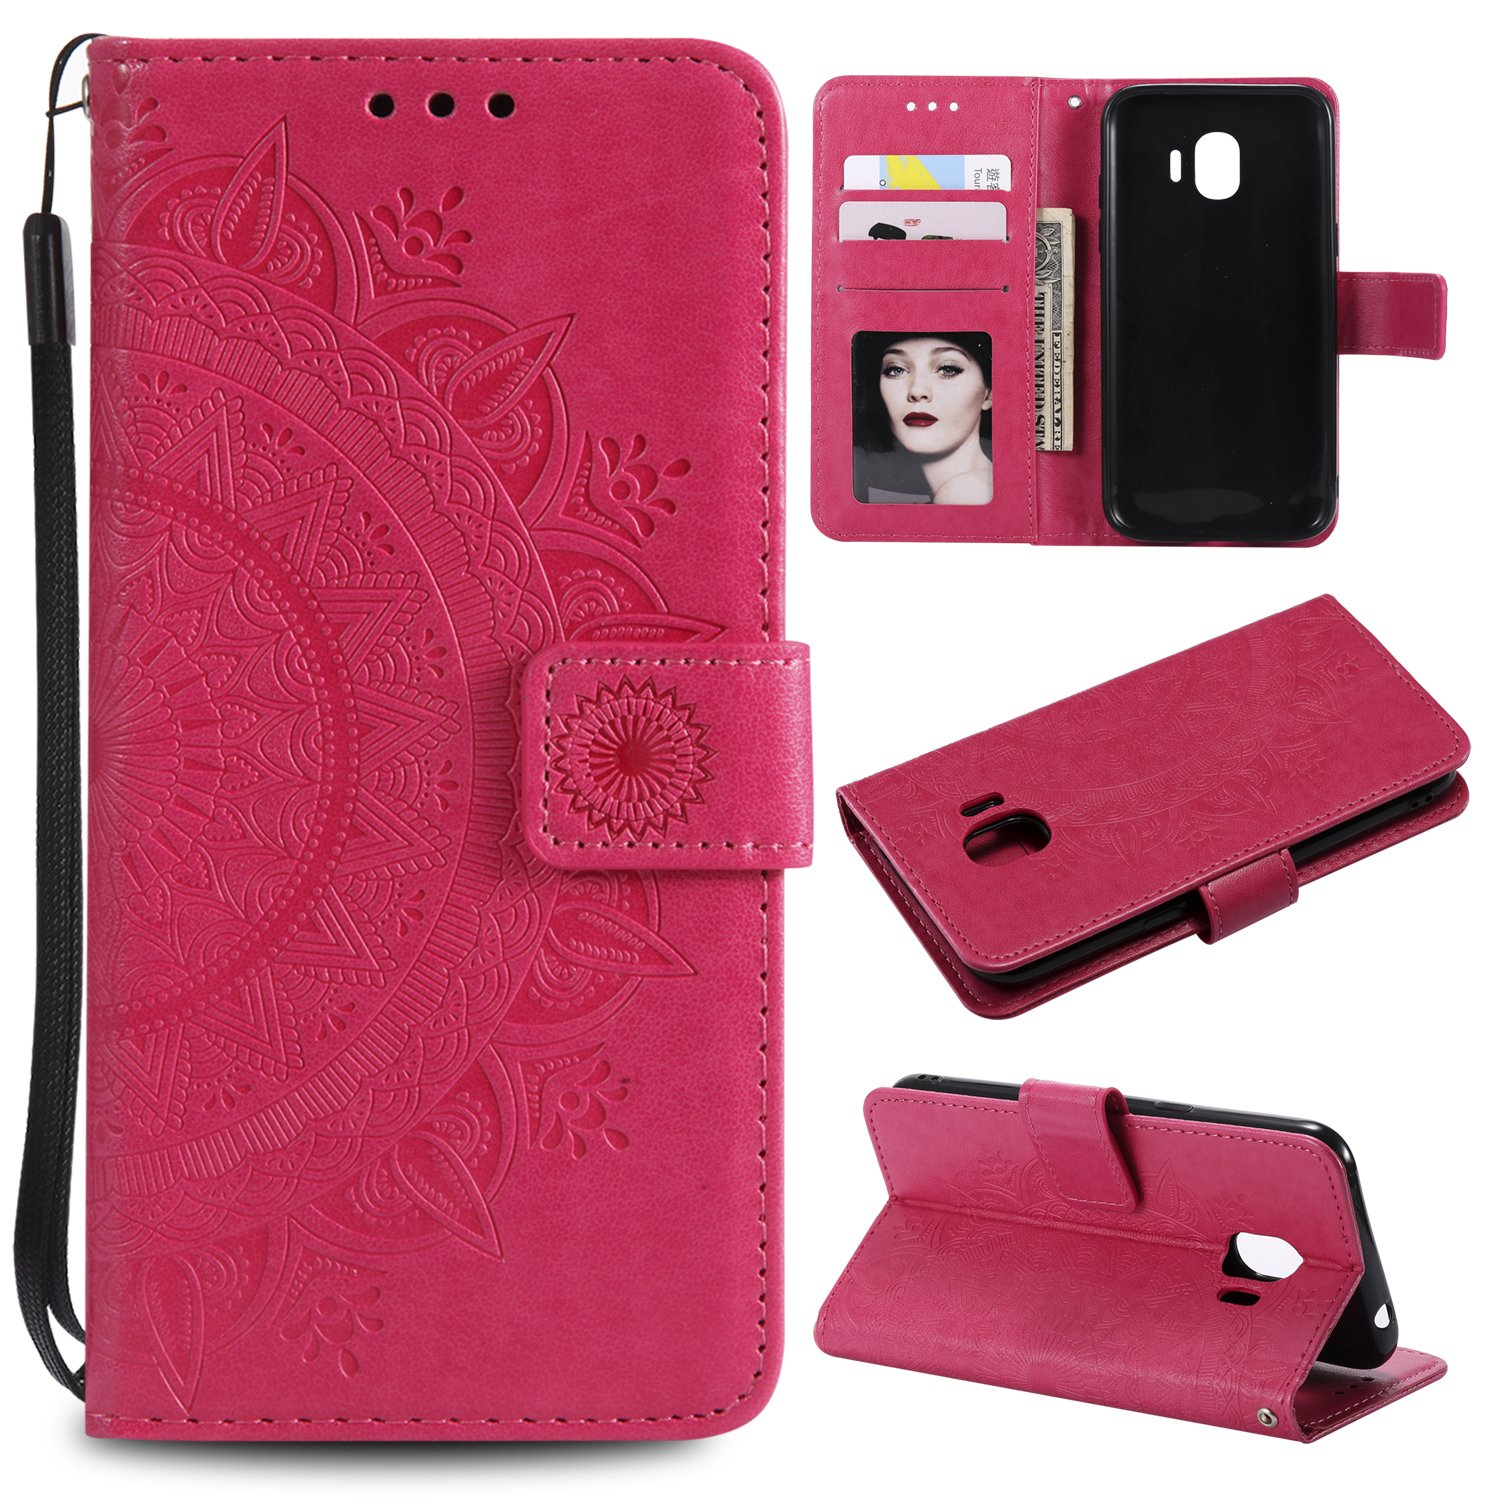 Galaxy J2 Pro 2018 Floral Wallet Case,Galaxy J2 Pro 2018 Strap Flip Case,Leecase Embossed Totem Flower Design Pu Leather Bookstyle Stand Flip Case for Samsung Galaxy J2 Pro 2018-Red